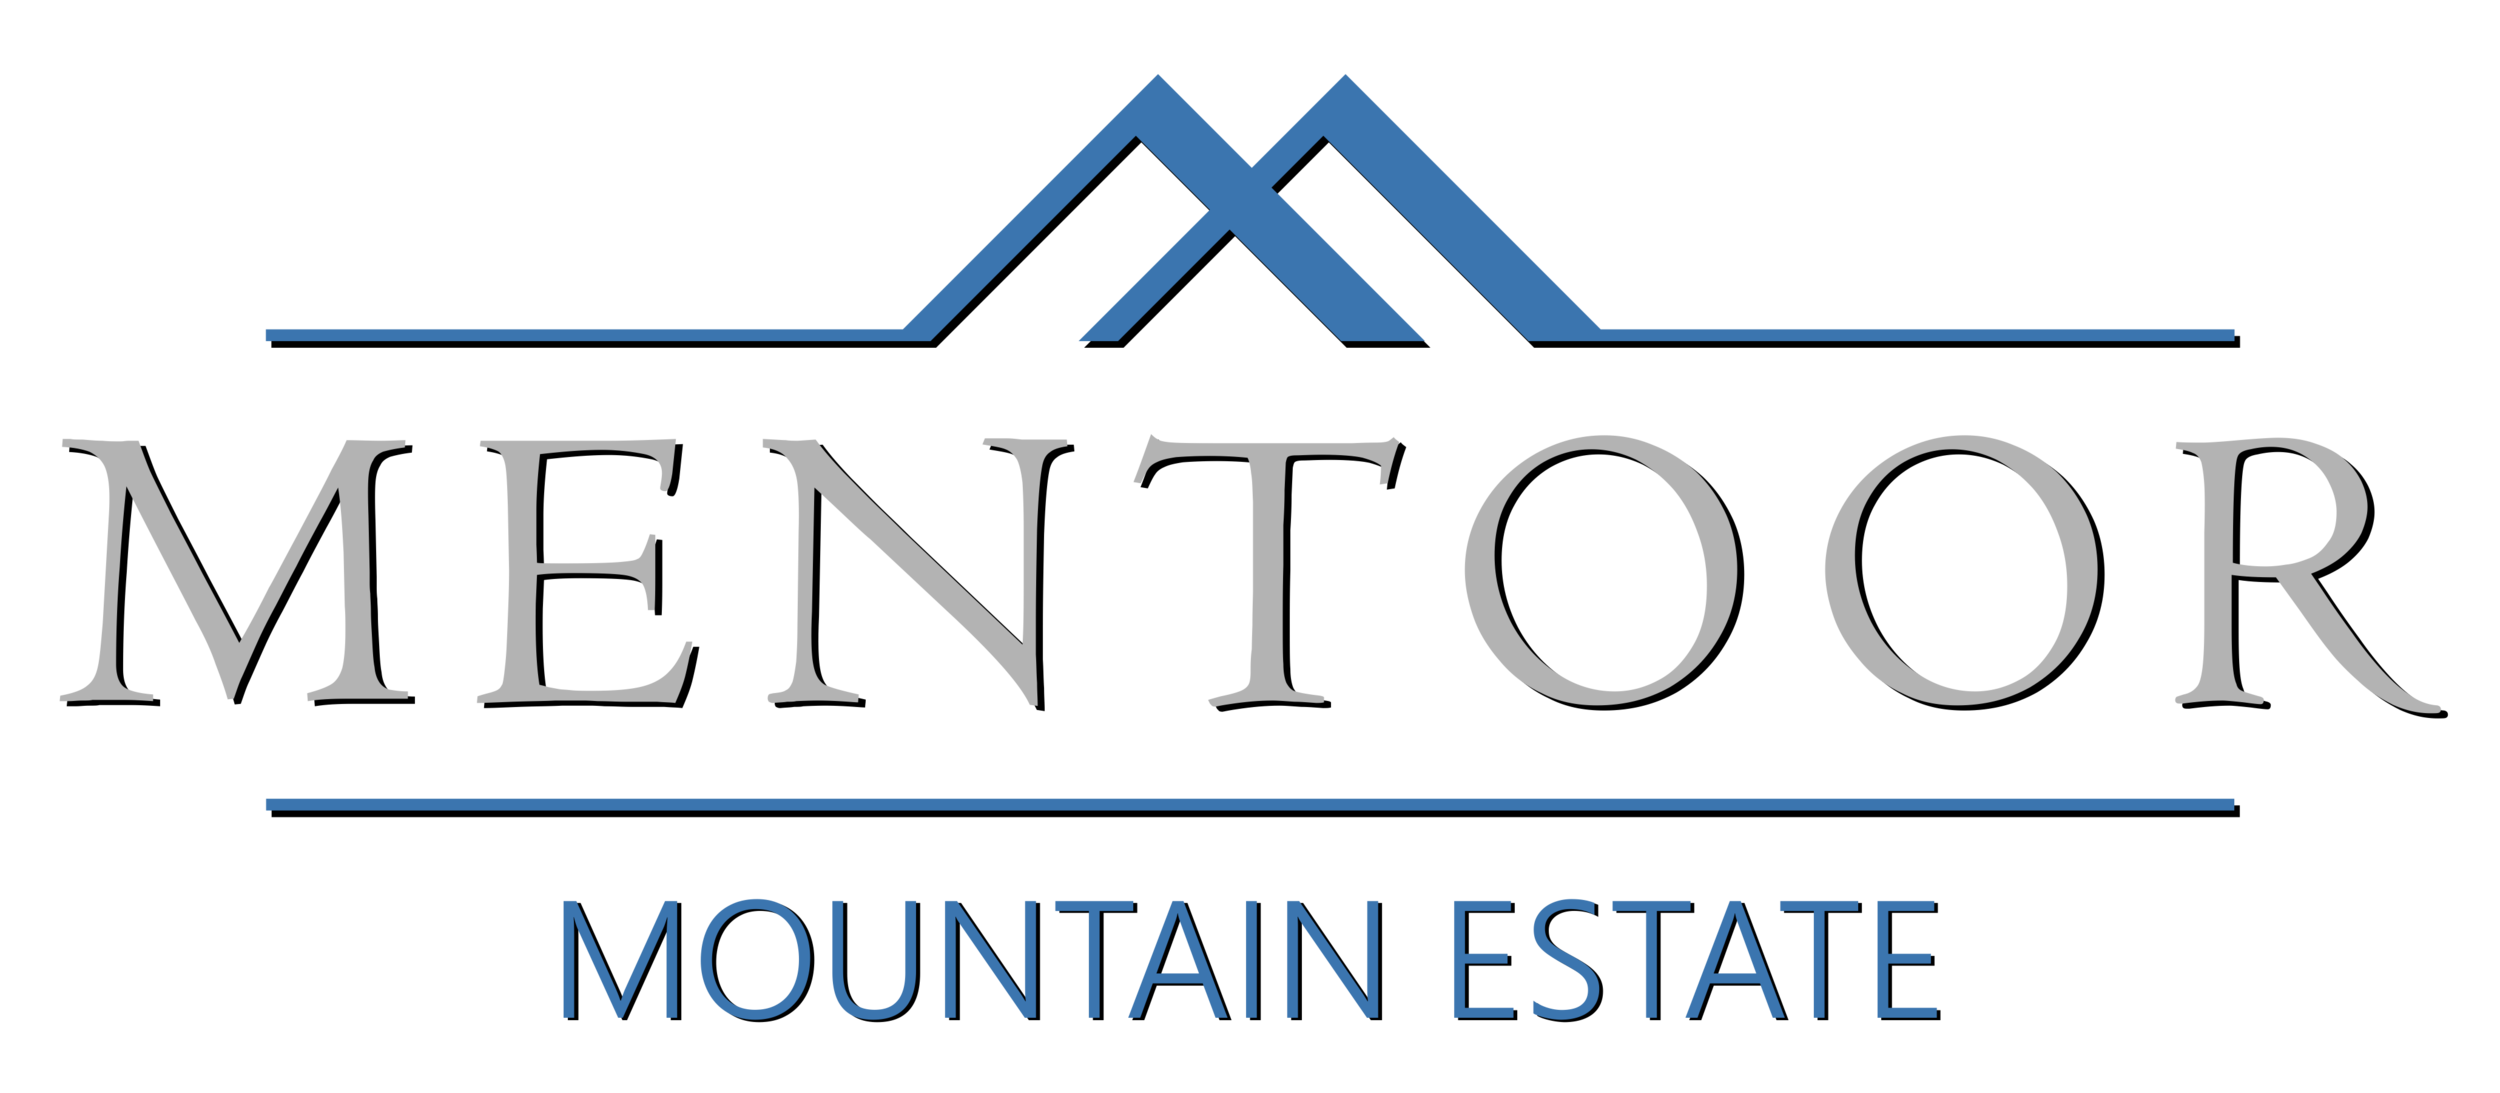 MentoorMountainEstate_logo_shadow.png